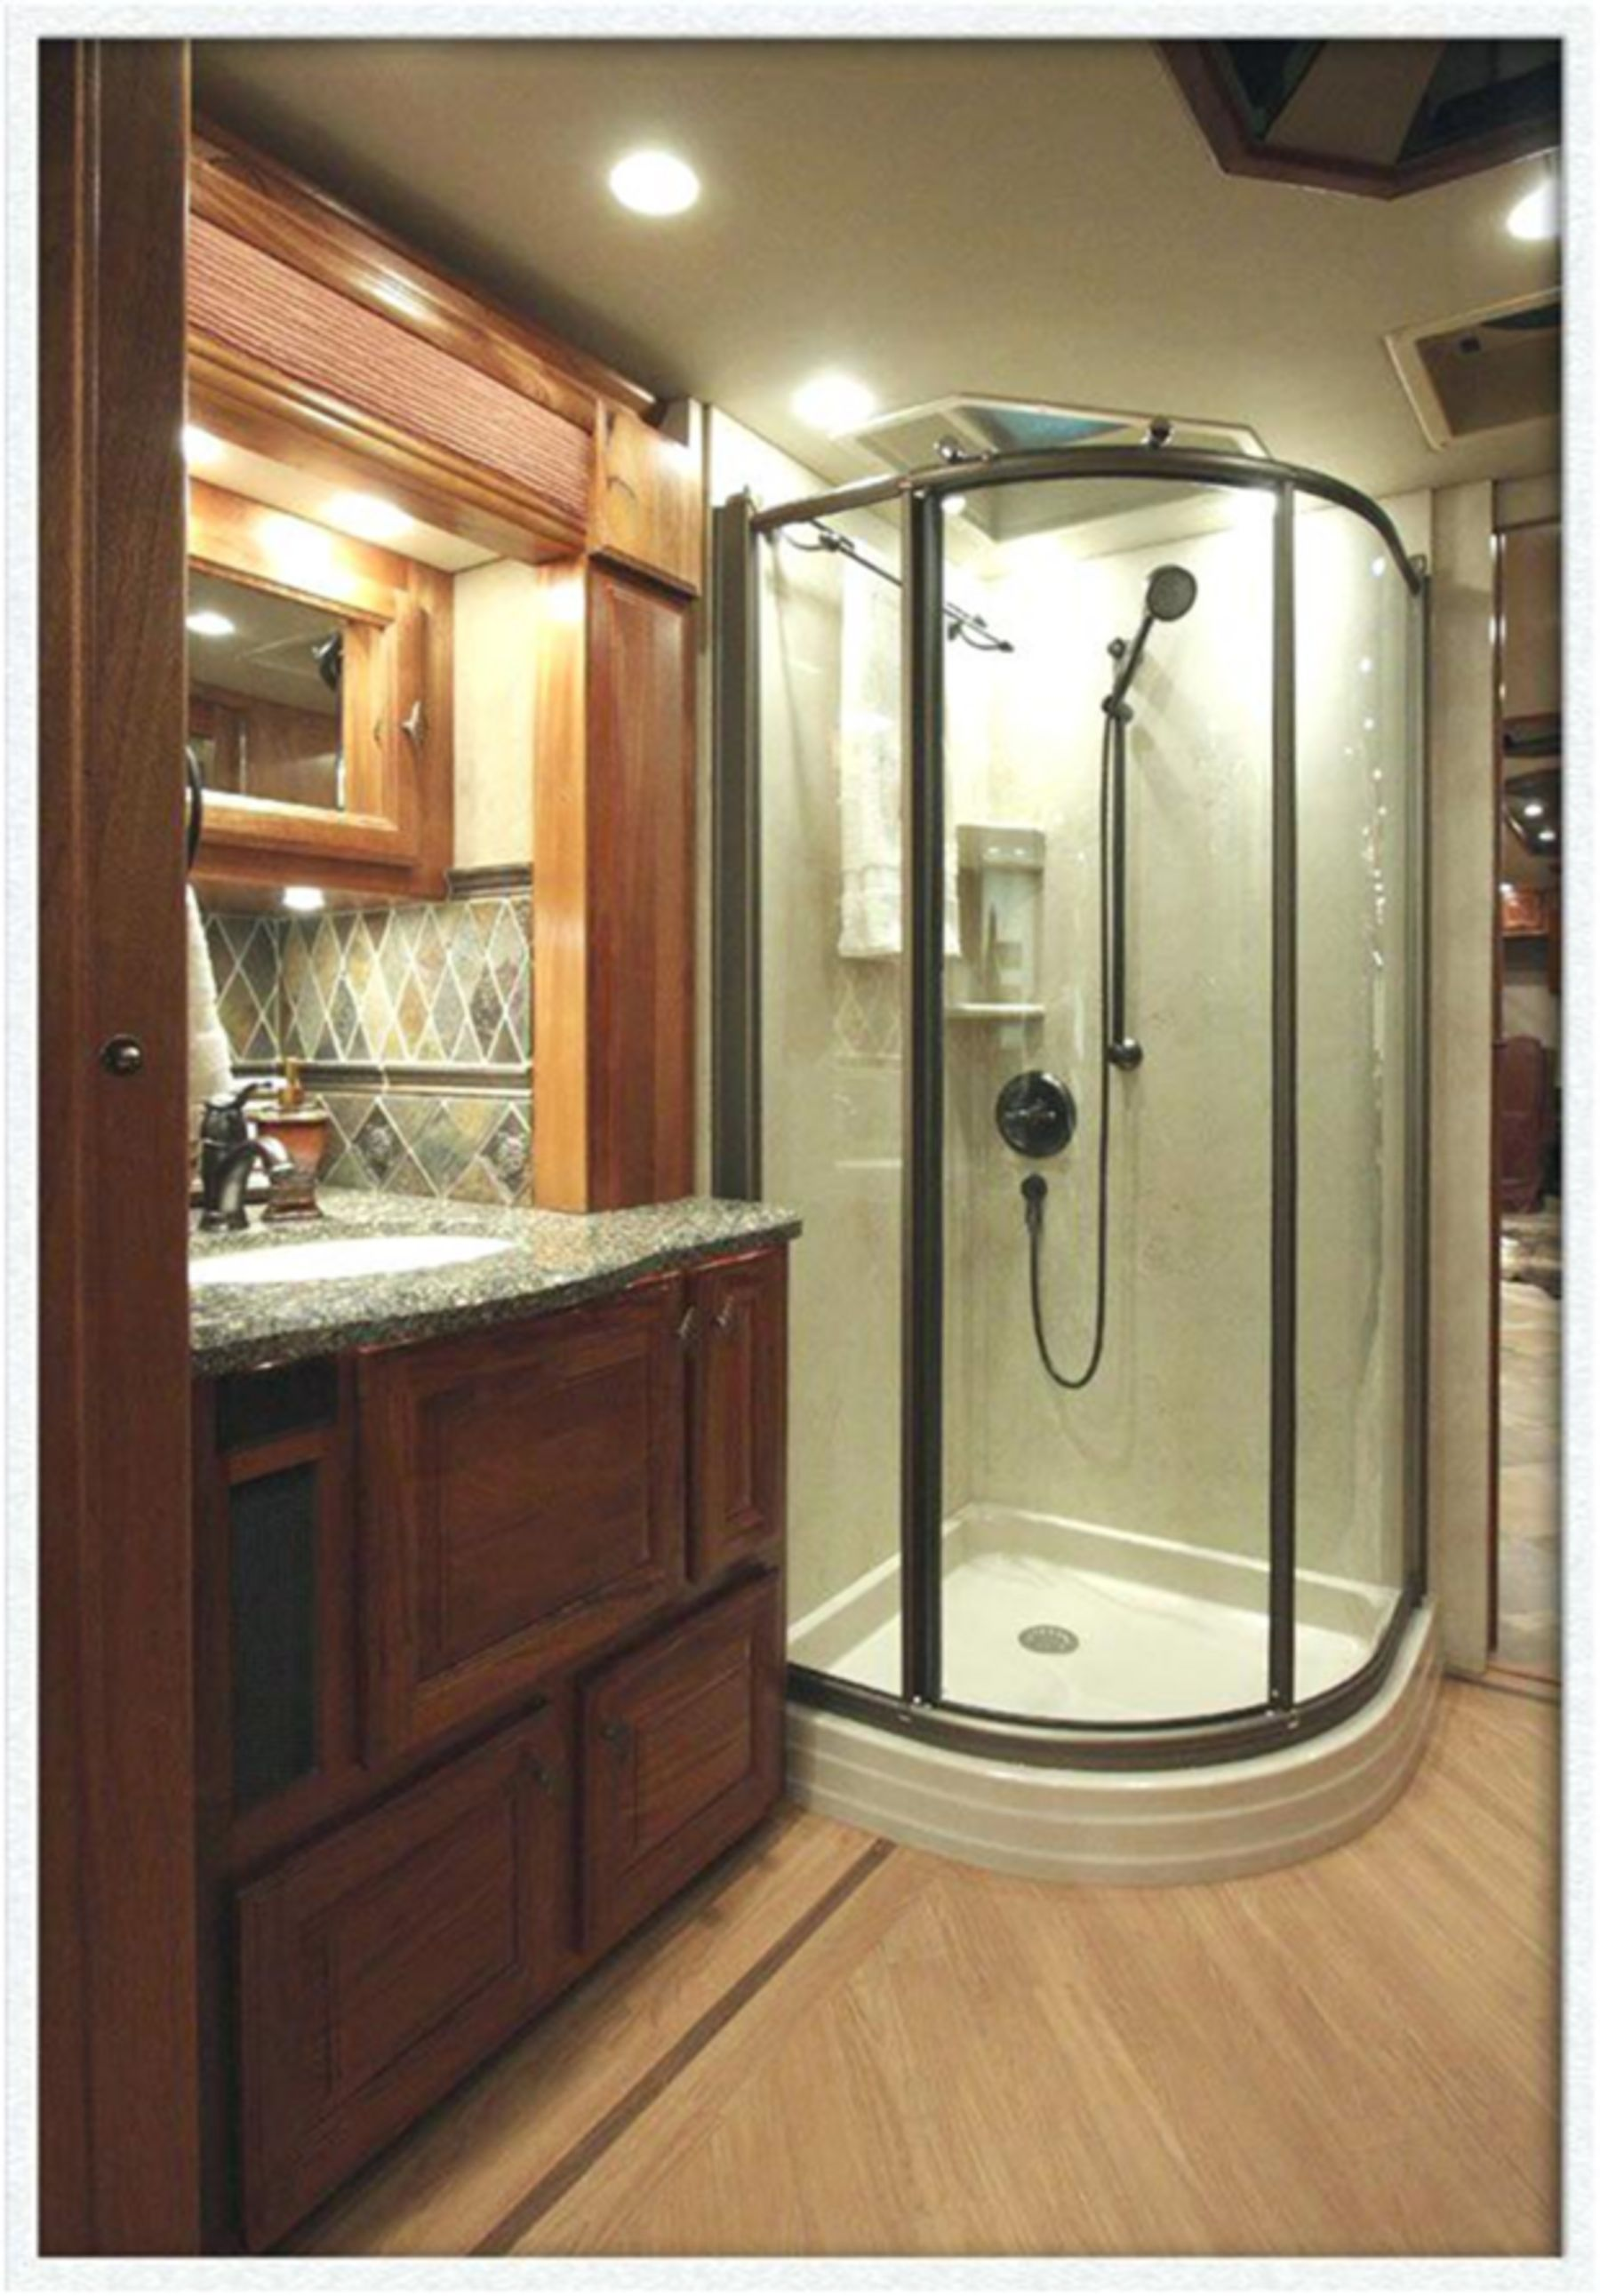 20 Best Rv Bathroom Ideas For Cozy Outdoor Holiday With Images